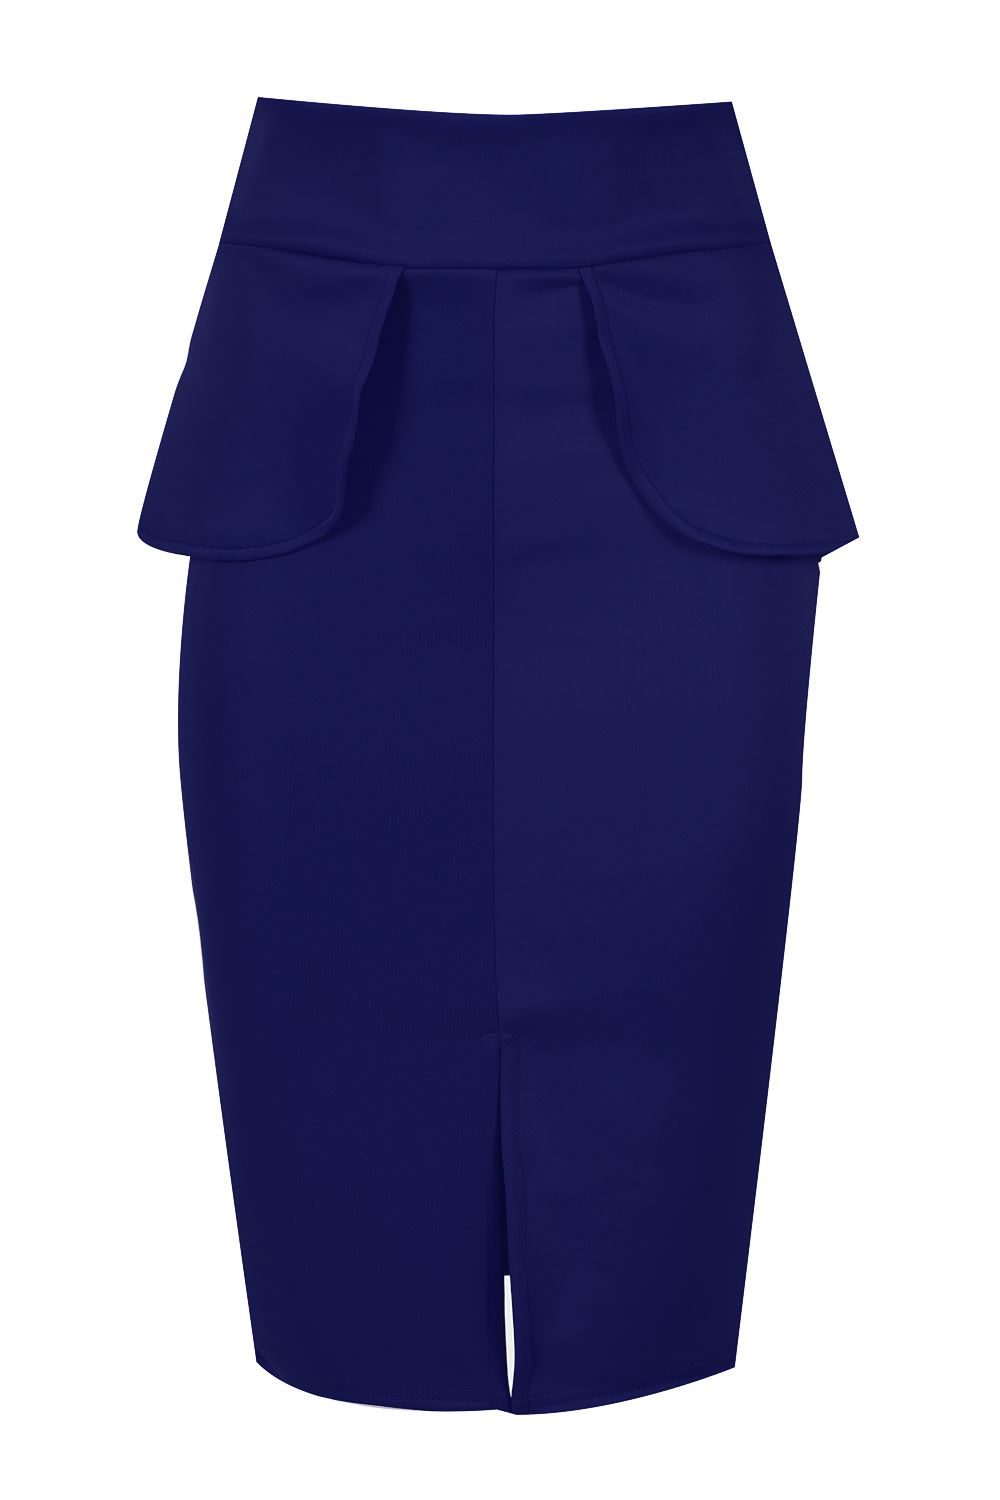 new s pencil fit bodycon peplum frill high waisted